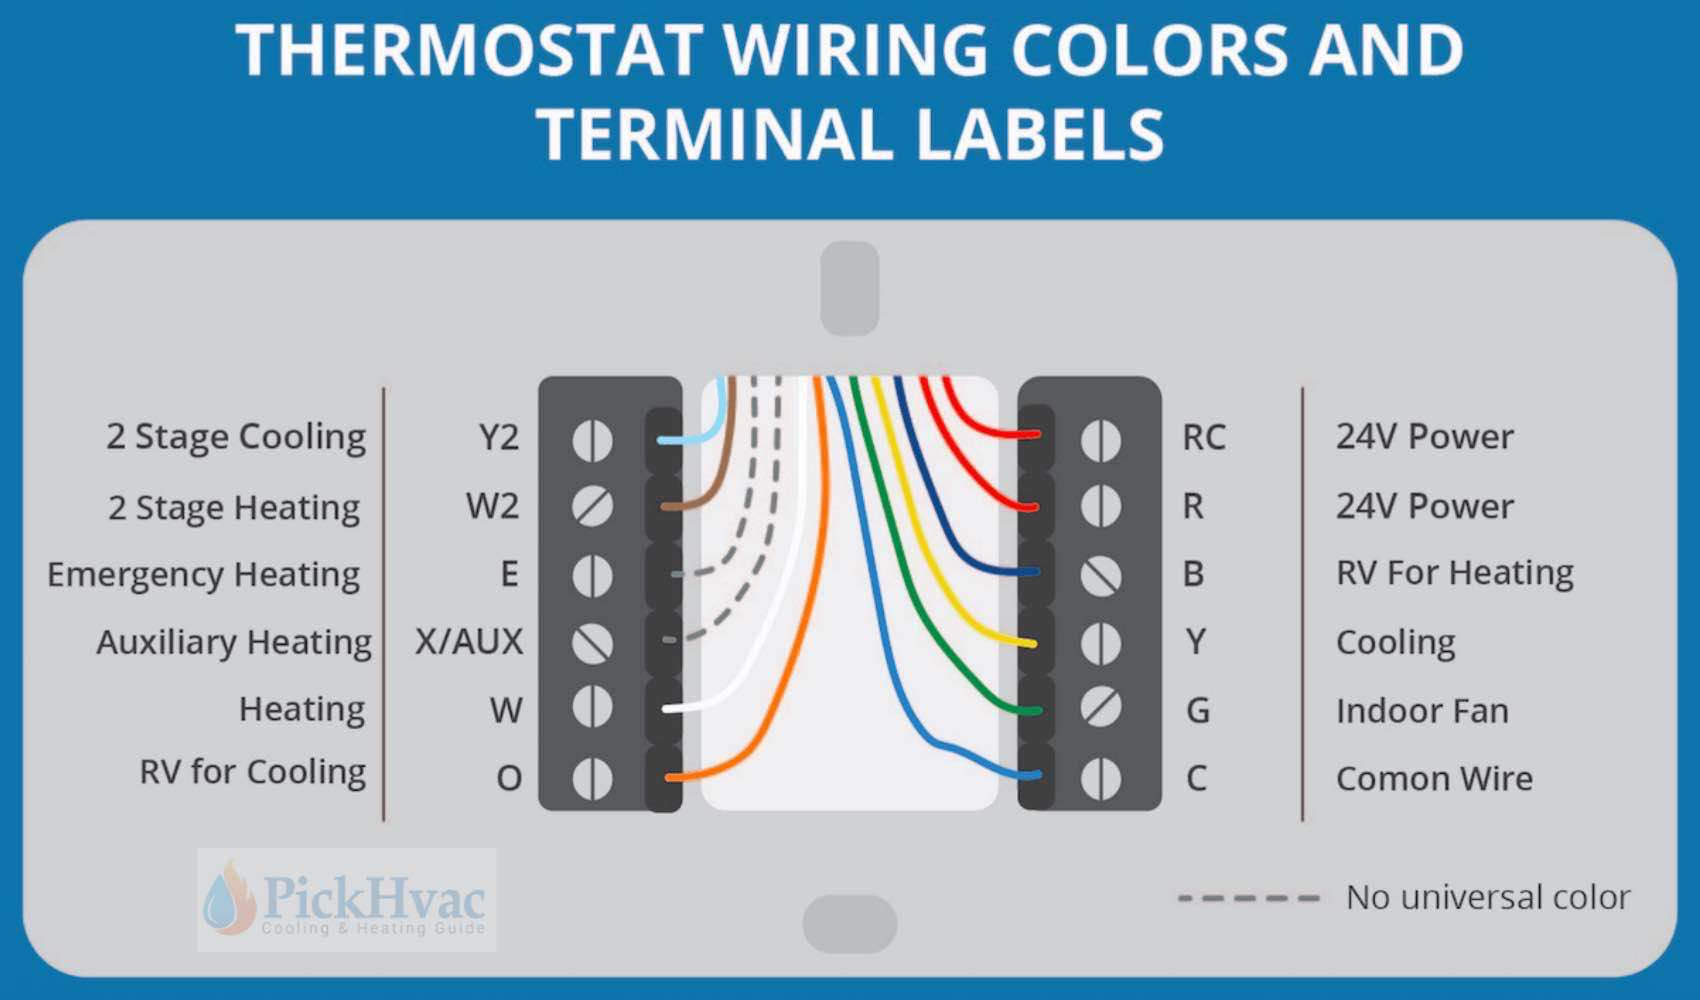 In-Depth Thermostat Wiring Guide For Homeowners - Wiring Diagram For Nest 3Rd Gen Variable Furnace